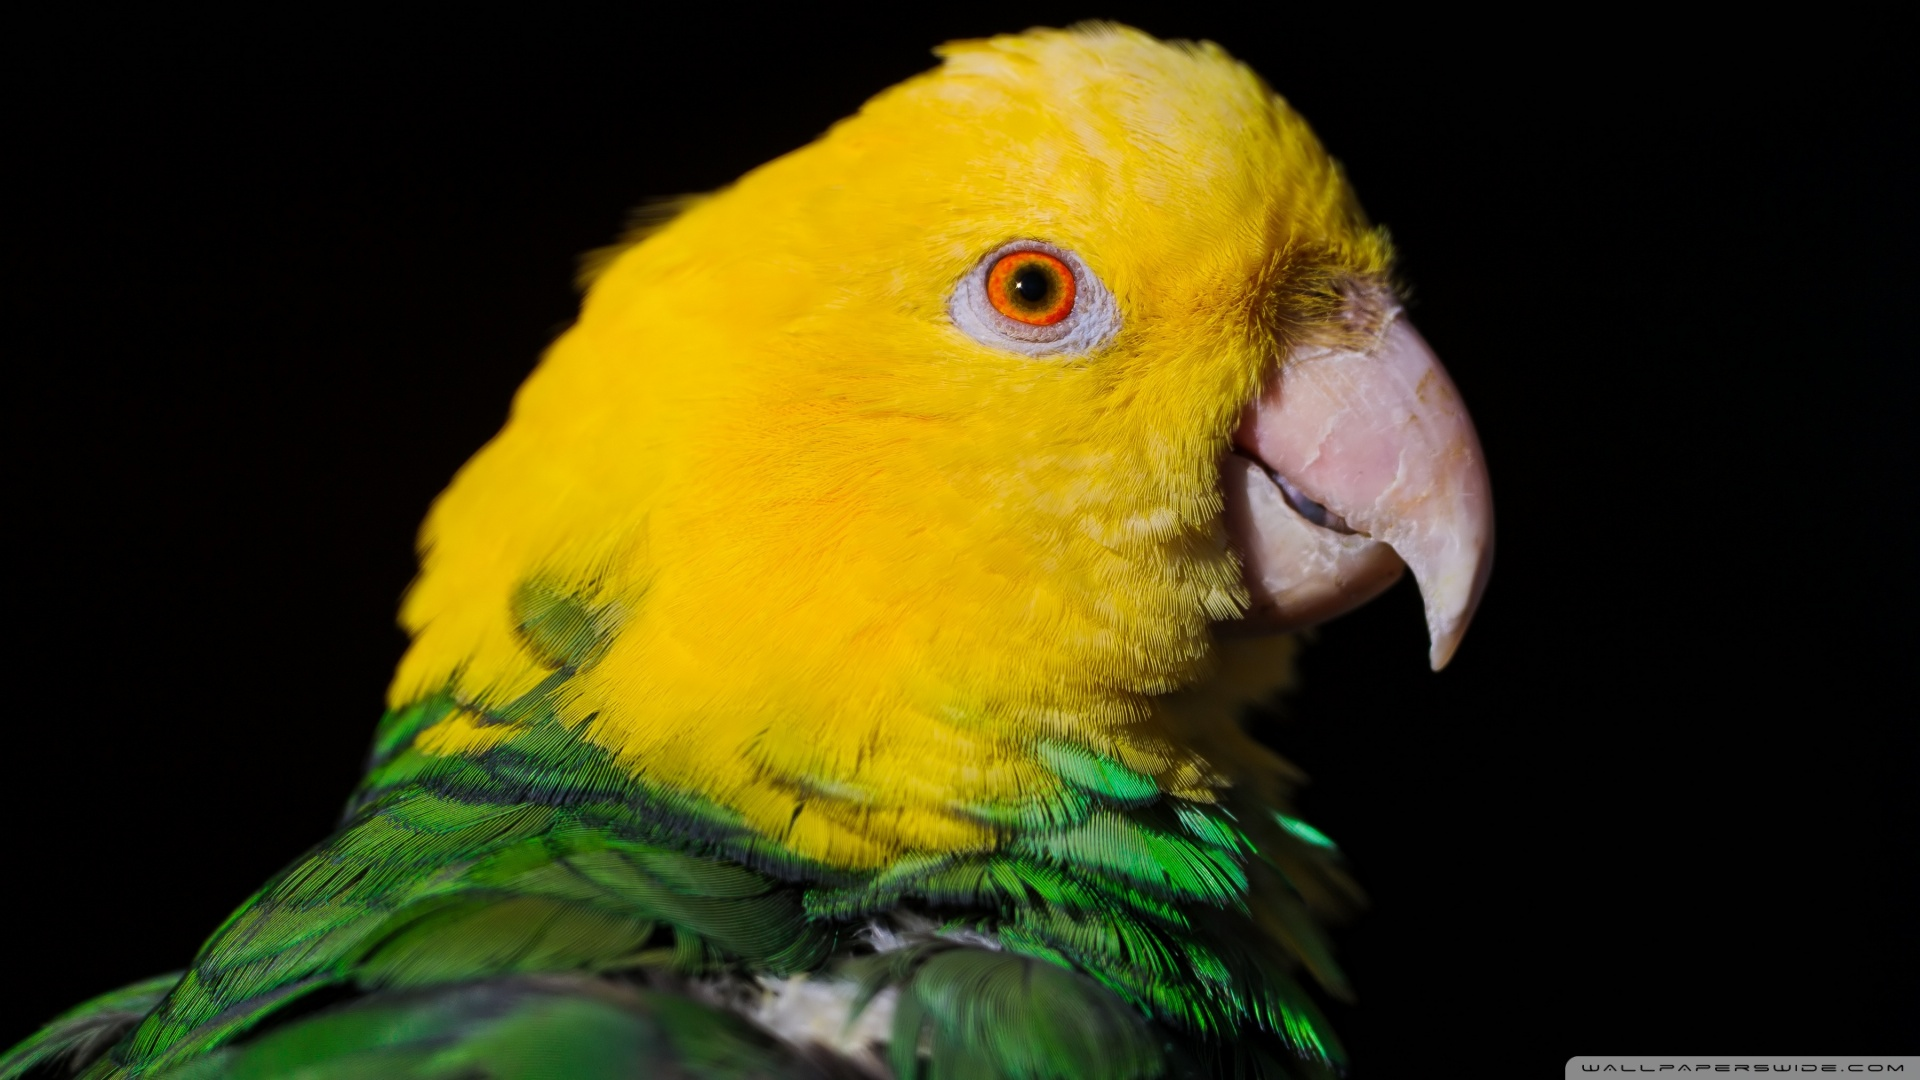 Green And Yellow Parrot Wallpaper 1920x1080 Green And Yellow Parrot 1920x1080